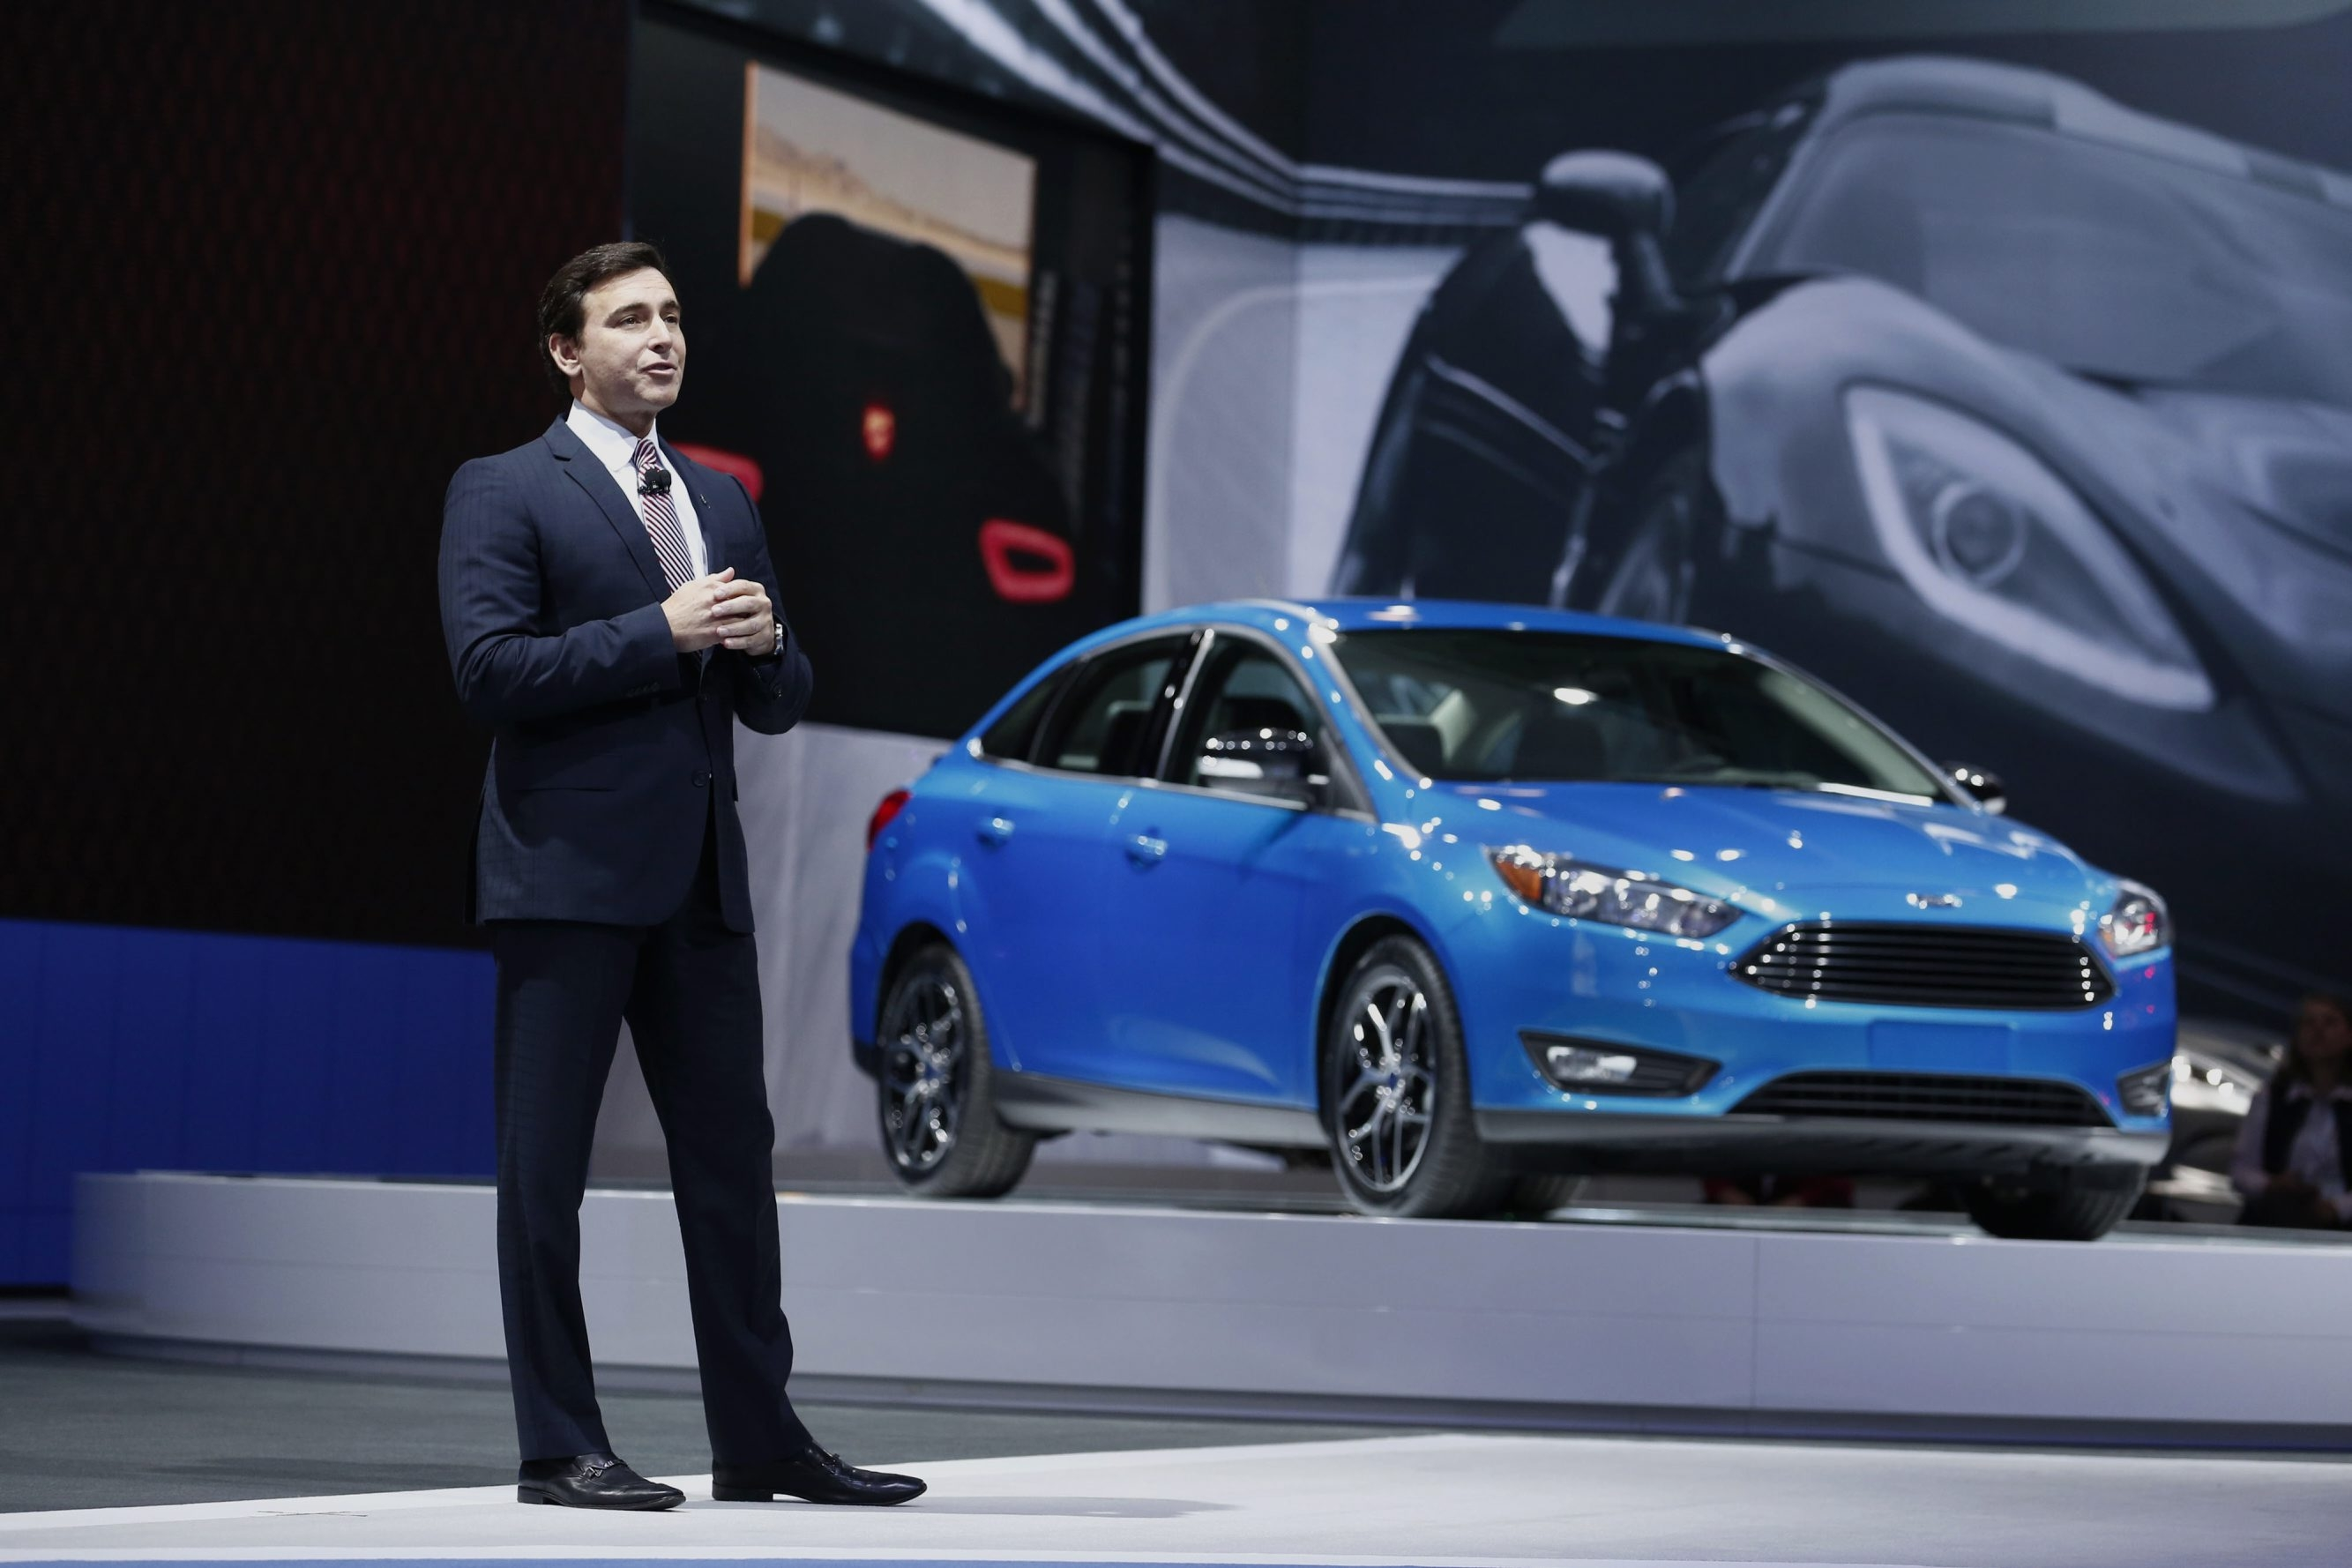 Mark Fields, chief operating officer of Ford Motor Co., speaks during the unveiling of limited edition Mustang GT at the 2014 New York Auto Show in New York last week. Ford is expected to announce Fields' promotion to CEO, replacing Alan Mulally.